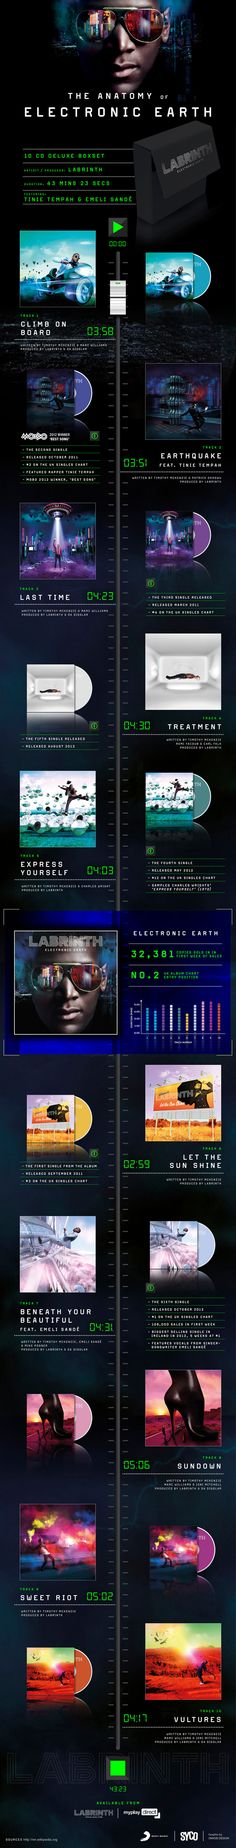 Check out the epic #ElectronicEarth. Download your copy over on iTunes: https://itunes.apple.com/gb/album/electronic-earth/id501448099?affId=1277383